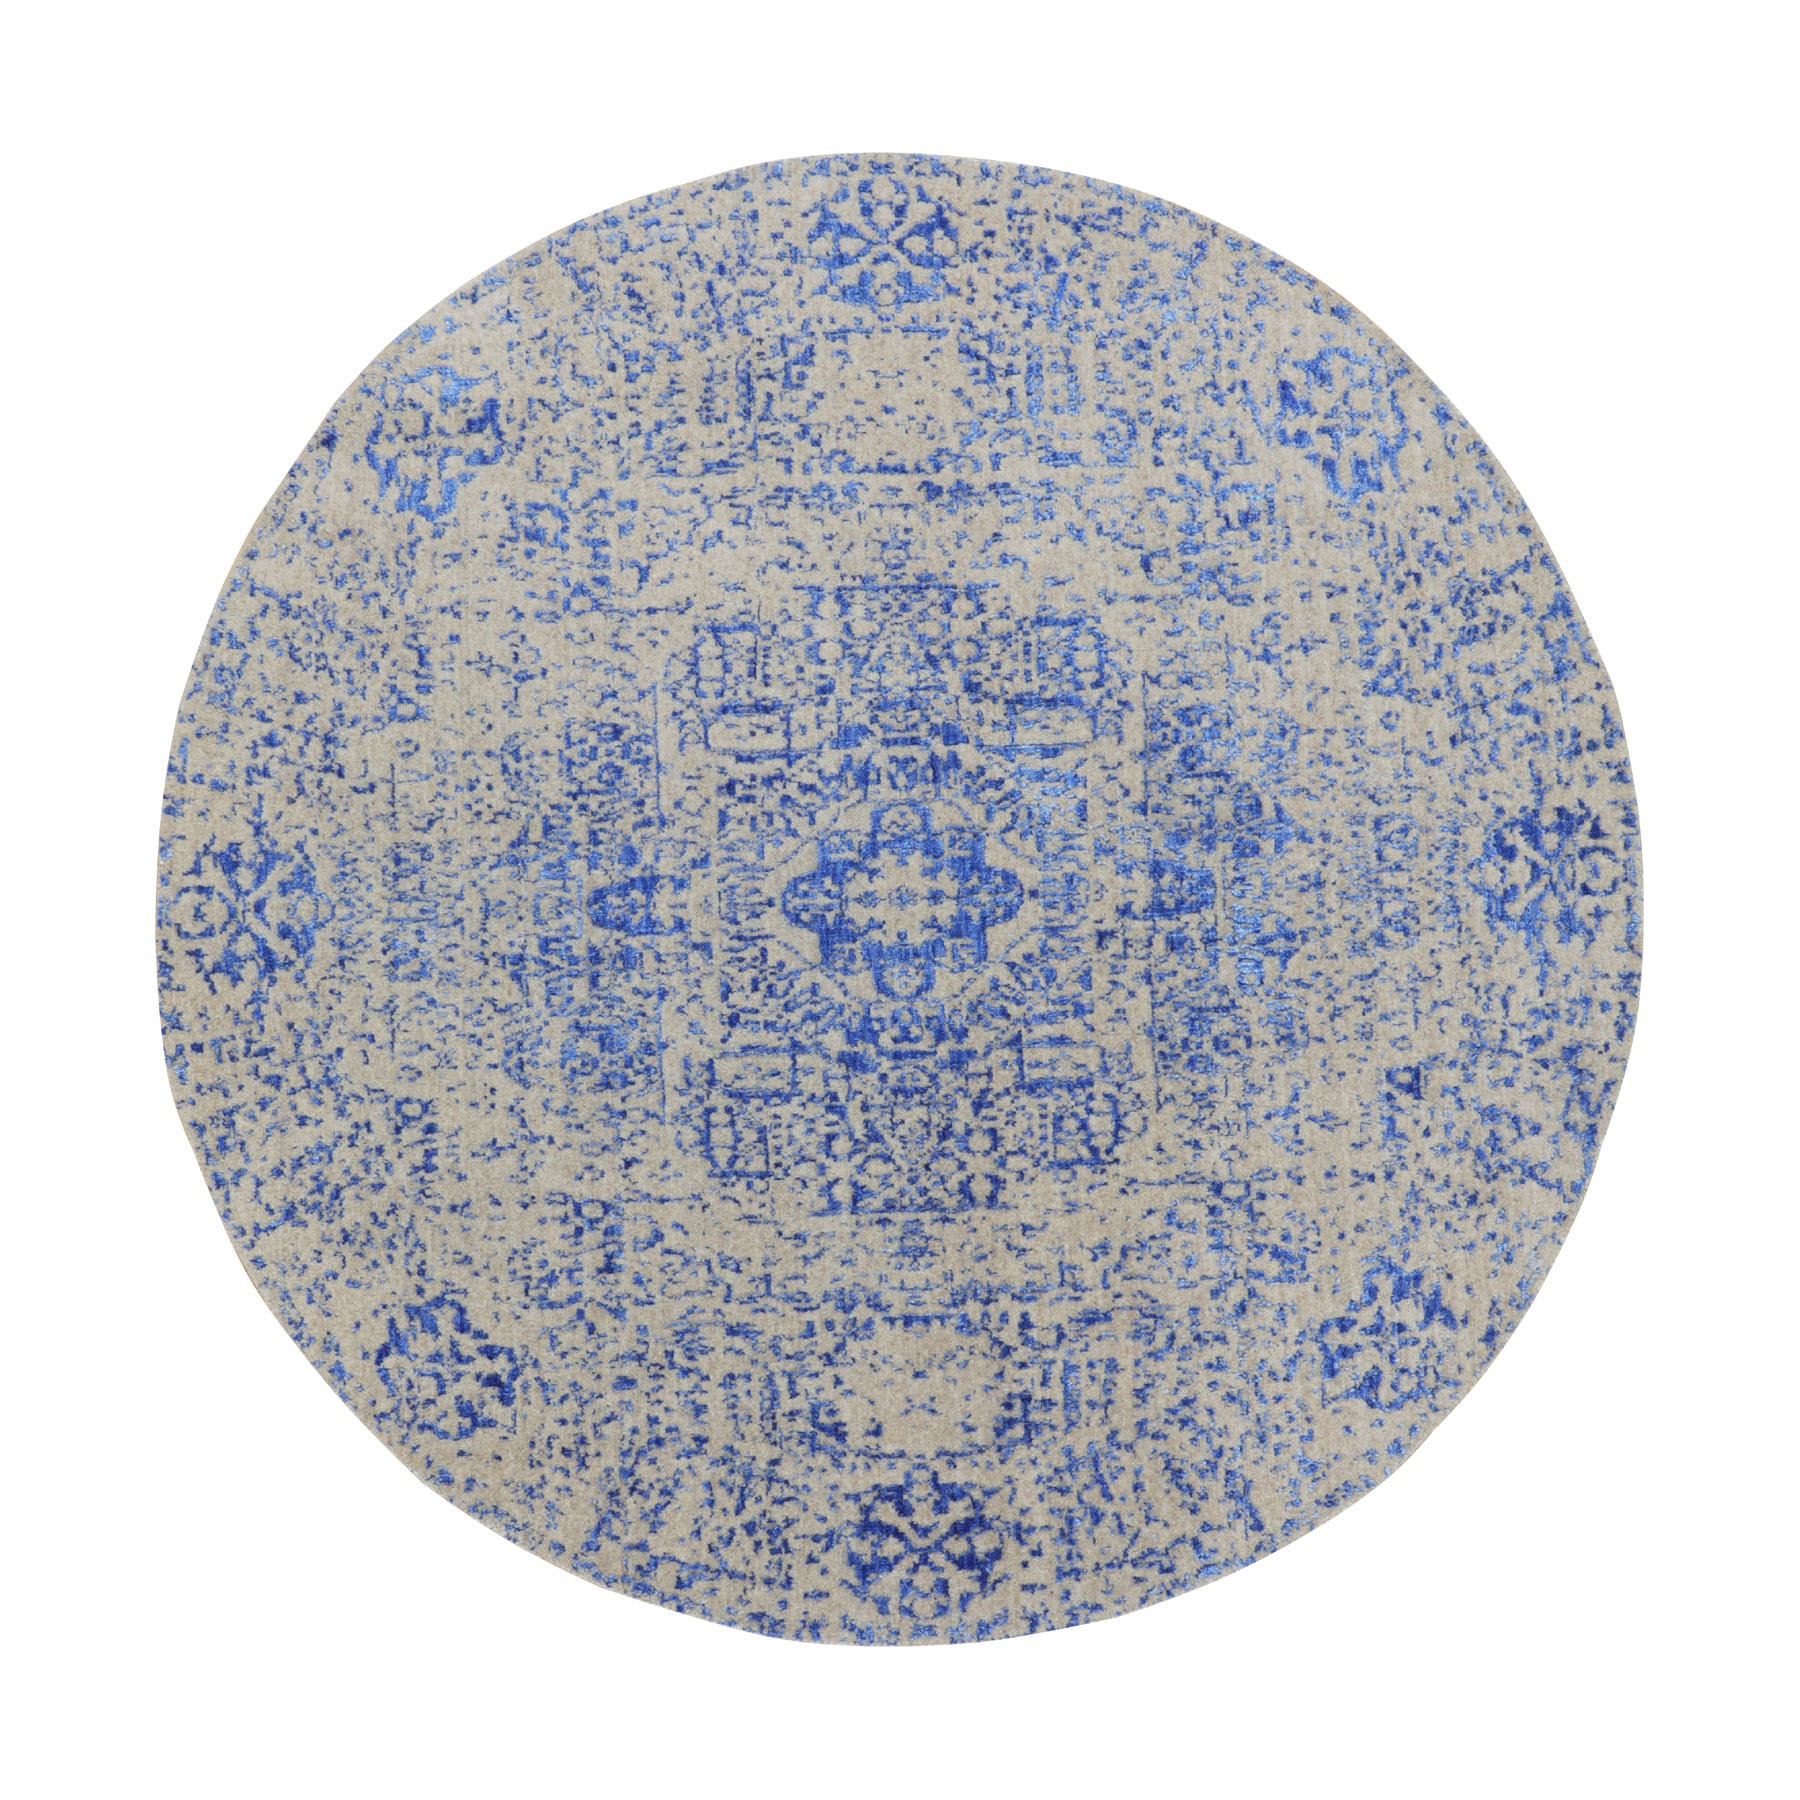 "5'9""x5'9"" Blue Wool and Silk Mamluk Design Jacquard Hand Loomed Round Oriental Rug"